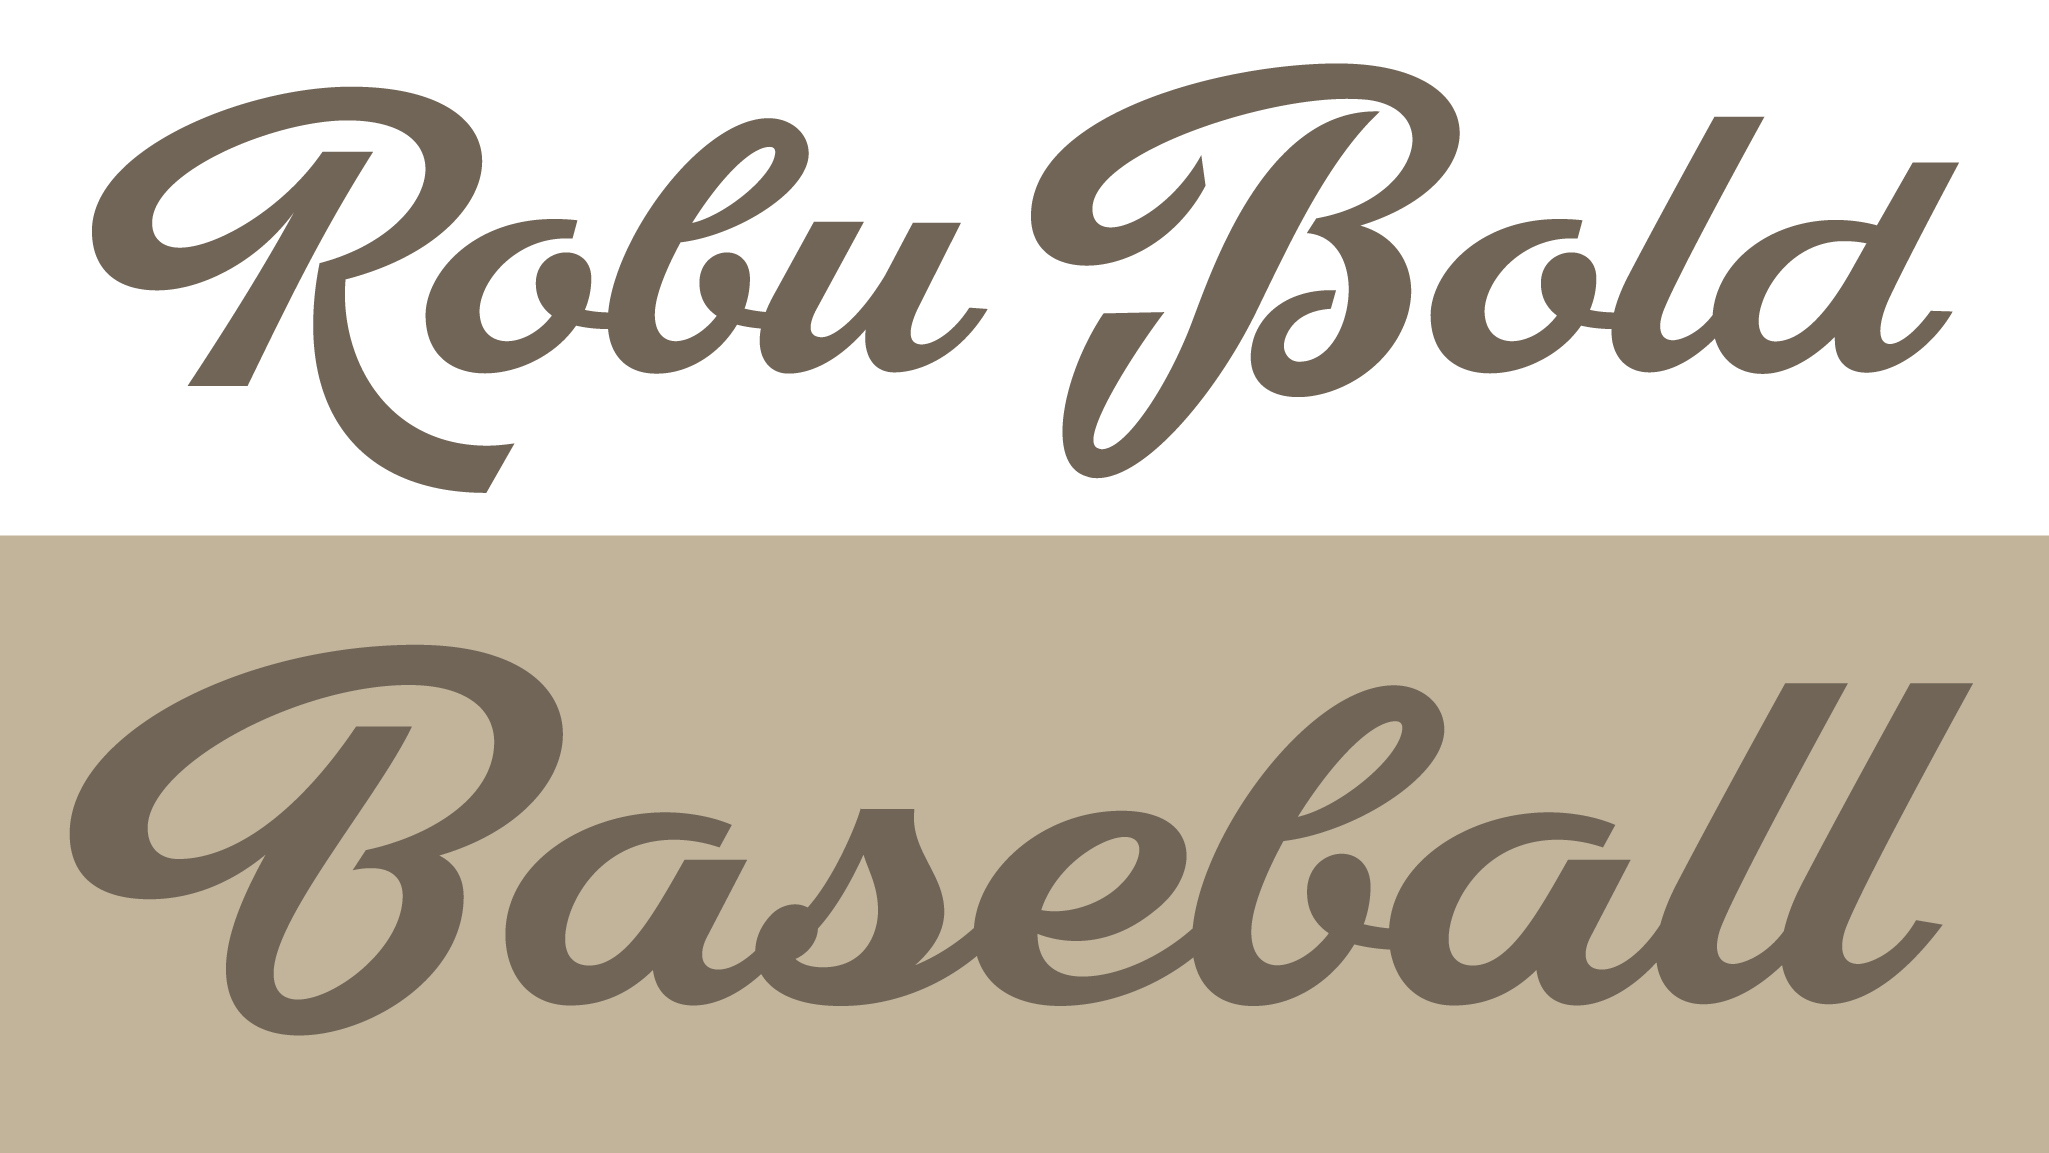 Robu Bold, a new script typeface designed by Andrei Robu. Available on www.typeverything.com